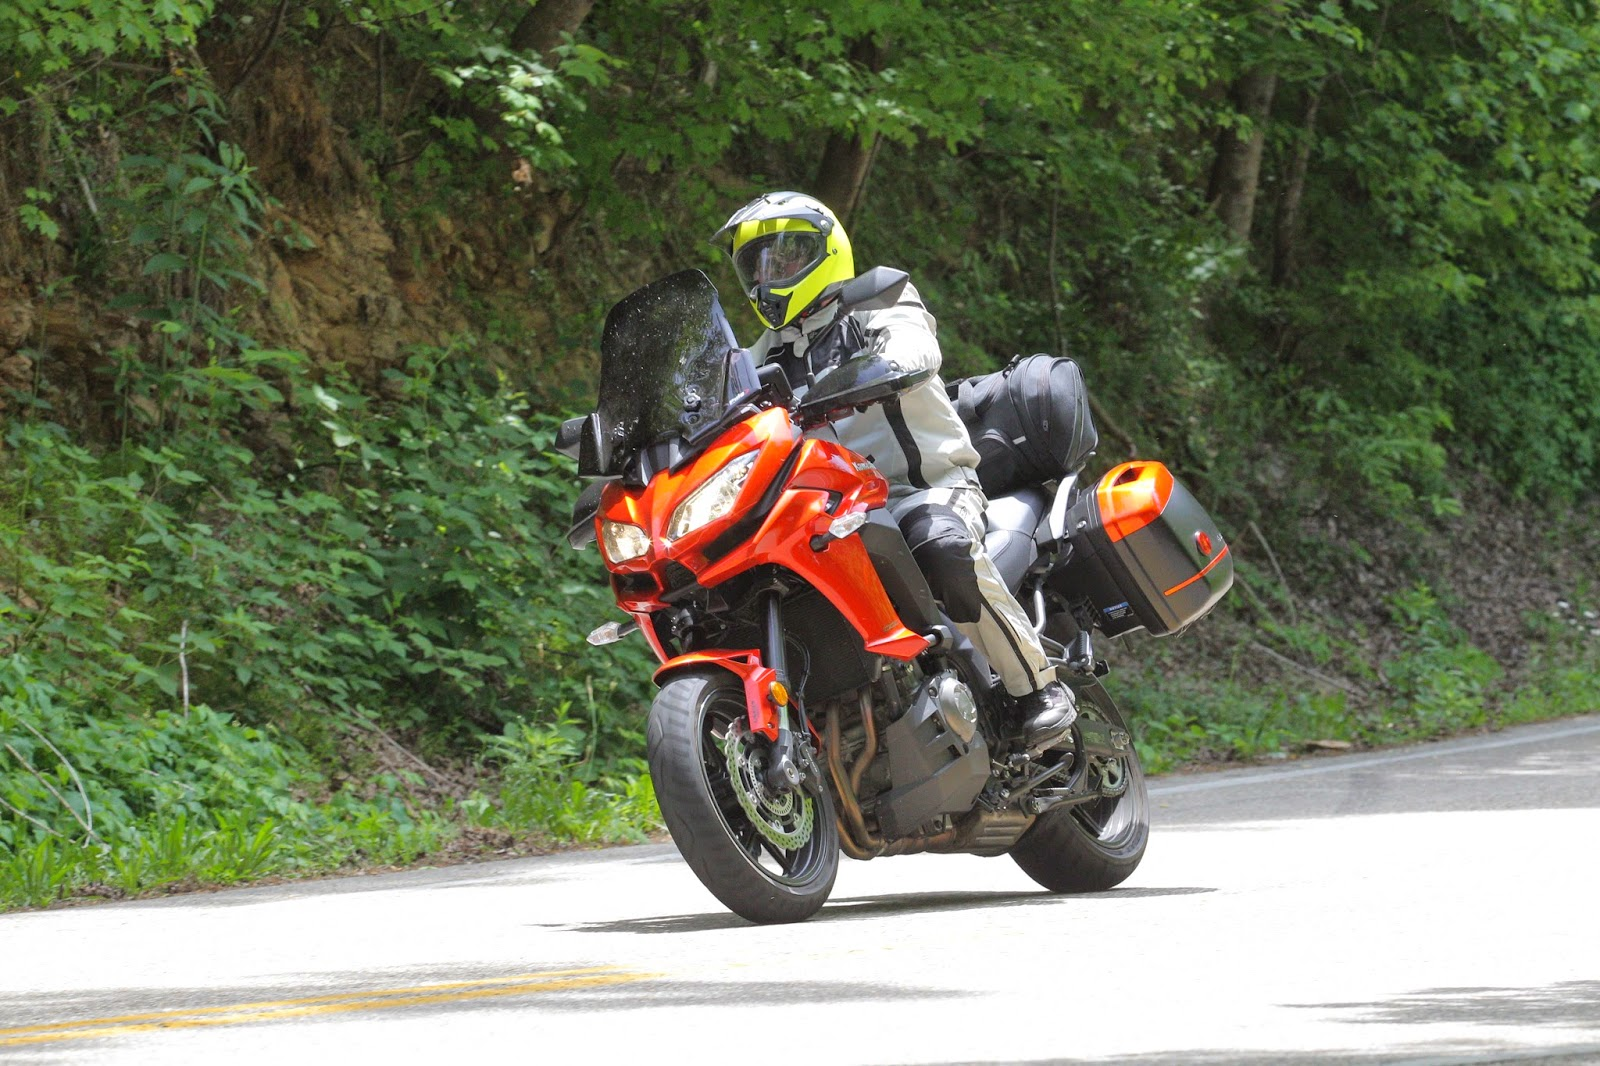 129 Slayer versys ventures, and more : dragon 2015